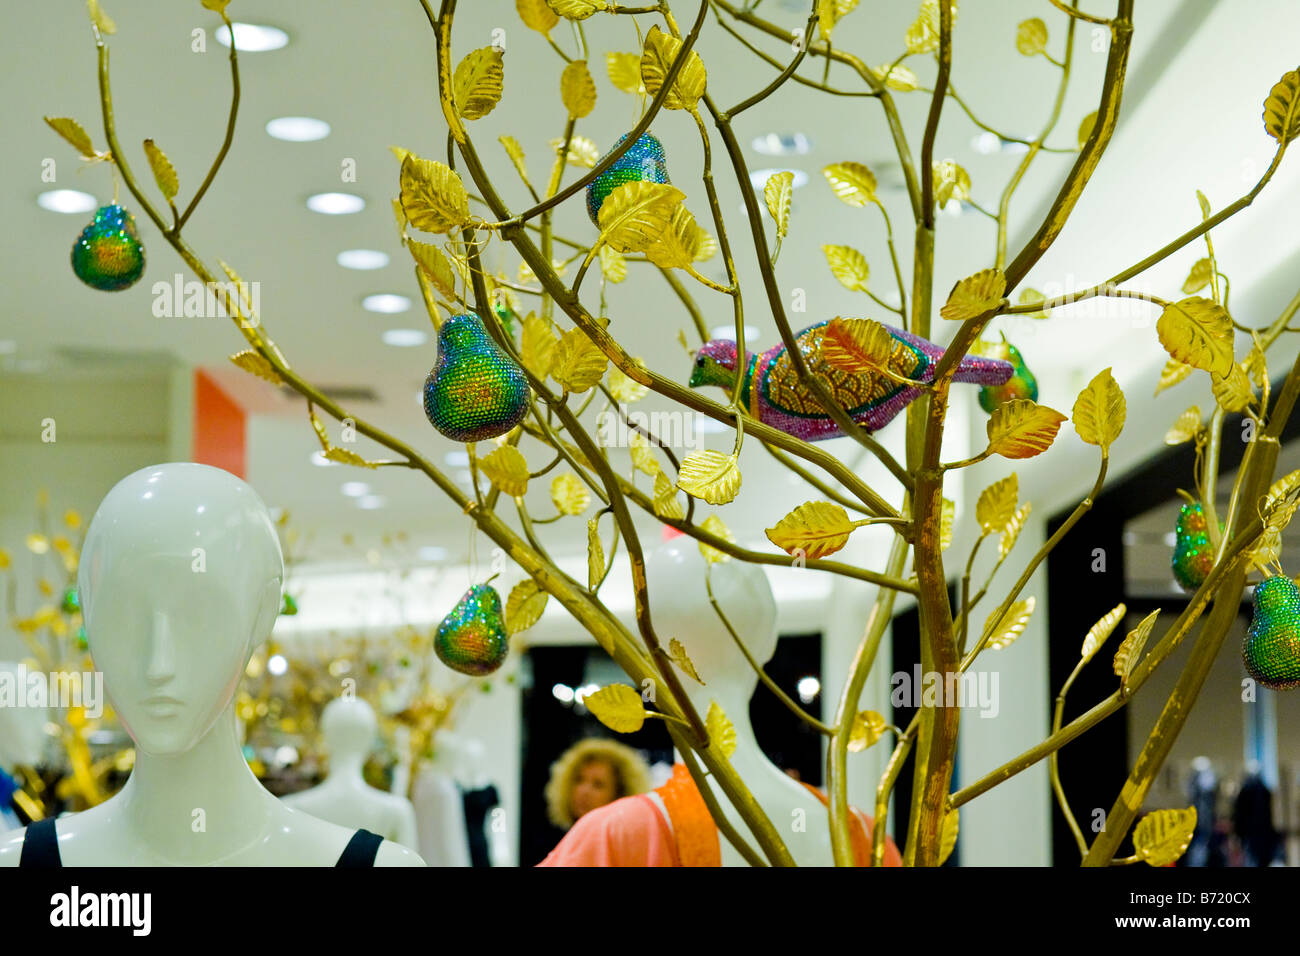 Gardens Shopping Mall or center Xmas decorations in store with a ...